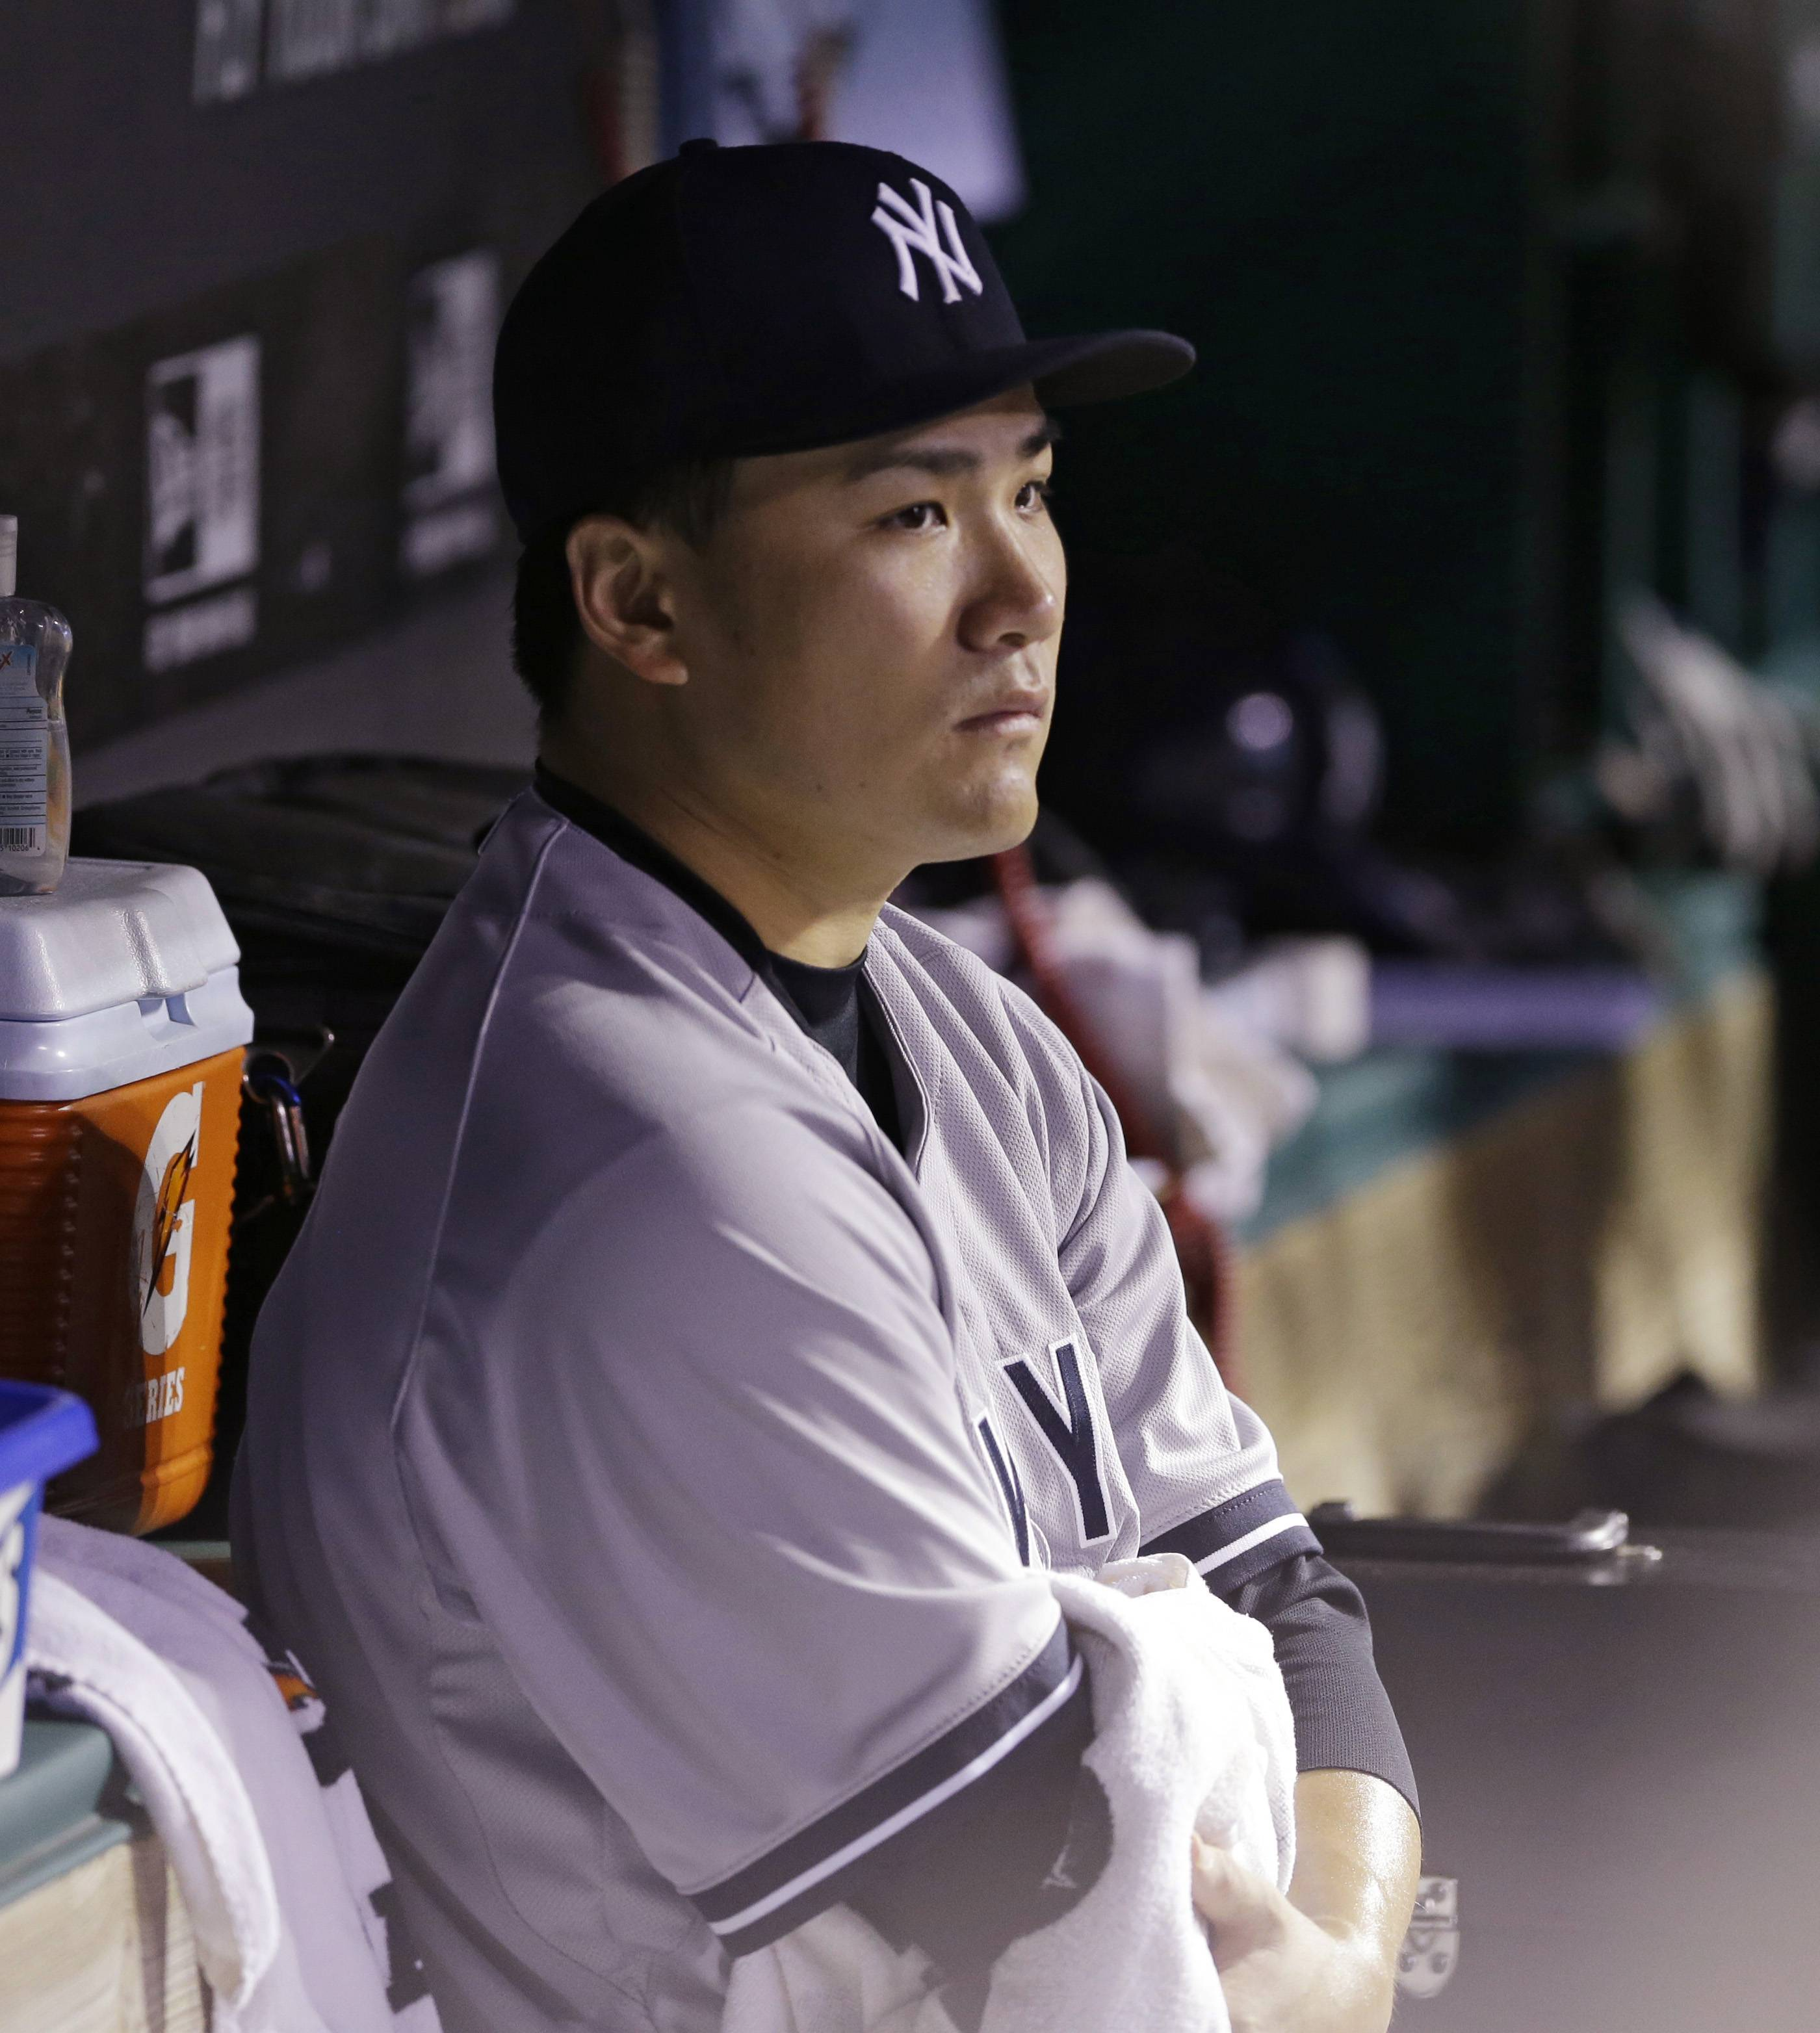 New York Yankees starting pitcher Masahiro Tanaka watches from the dugout after leaving the game in the seventh inning of a baseball game against the Cleveland Indians Tuesday, July 8, 2014, in Cleveland. Tanaka pitched 6 2/3 innings and gave up 10 hits and five runs.